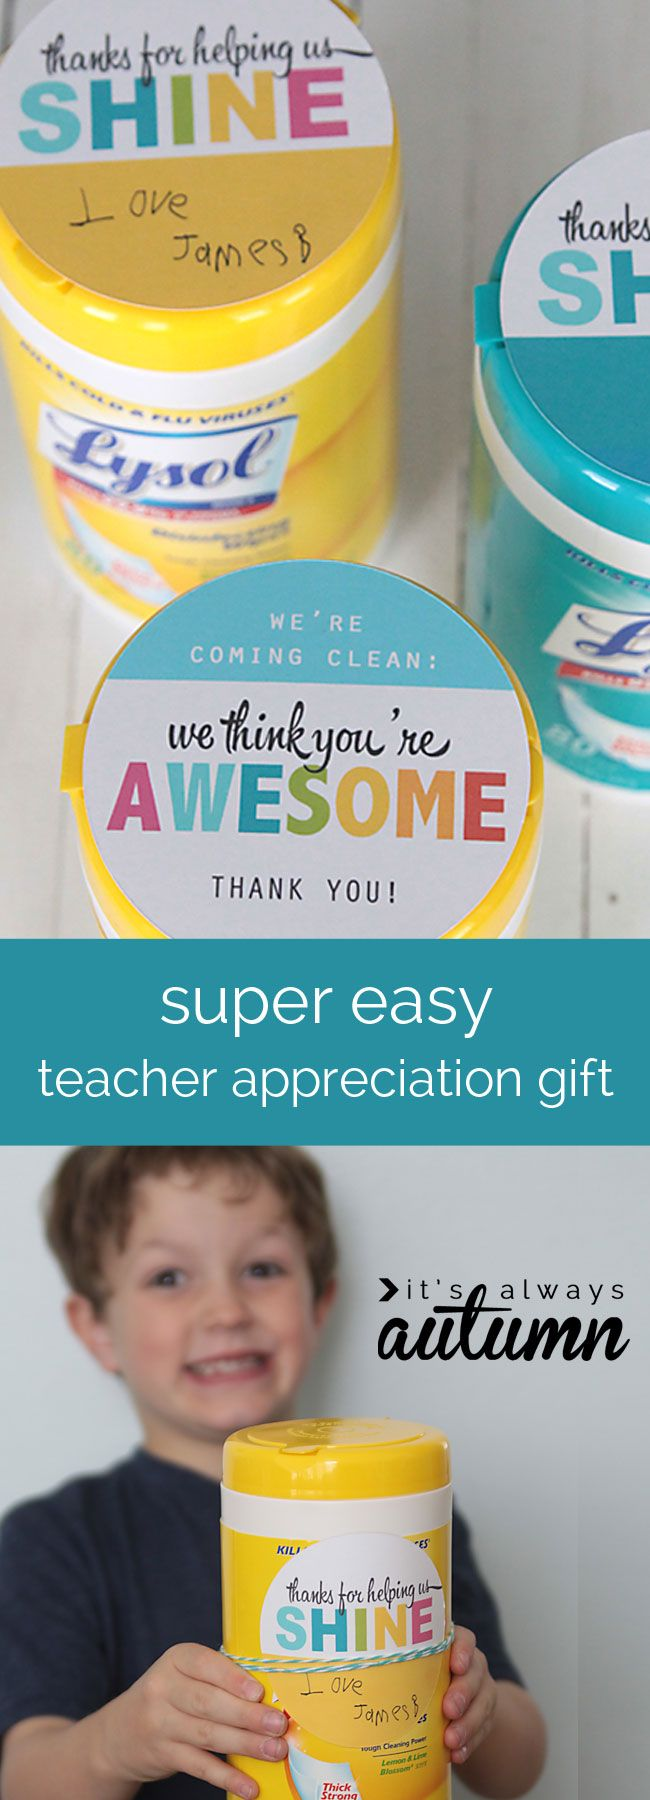 I love this! Cheap, easy, and cute teacher appreciation gift that the teacher will actually use! They get so many goodies they end up throwing away - how about giving Lysol wipes instead? Cute free printable labels.